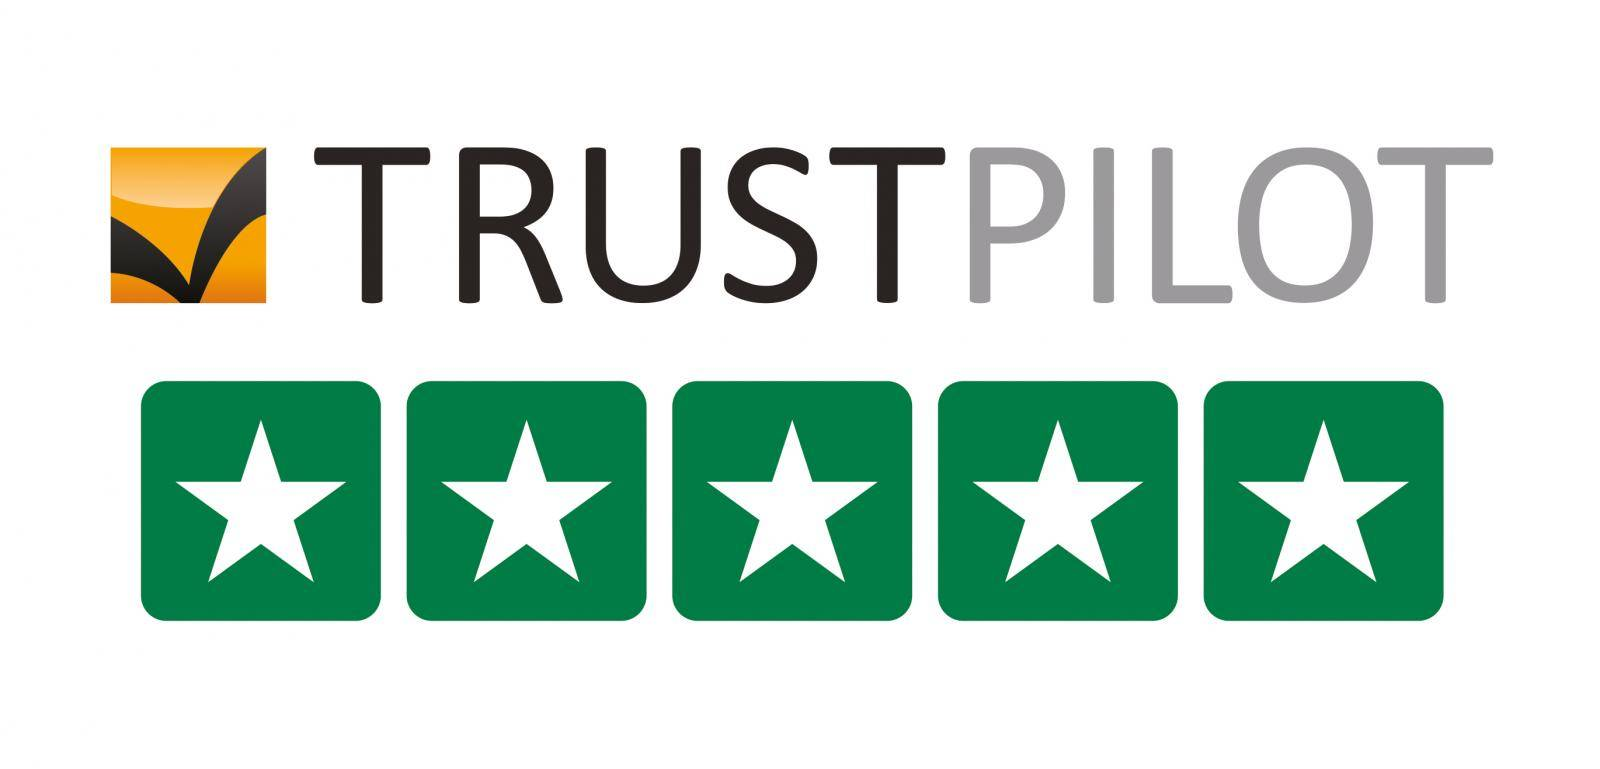 Buy 3 Trustpilot Reviews